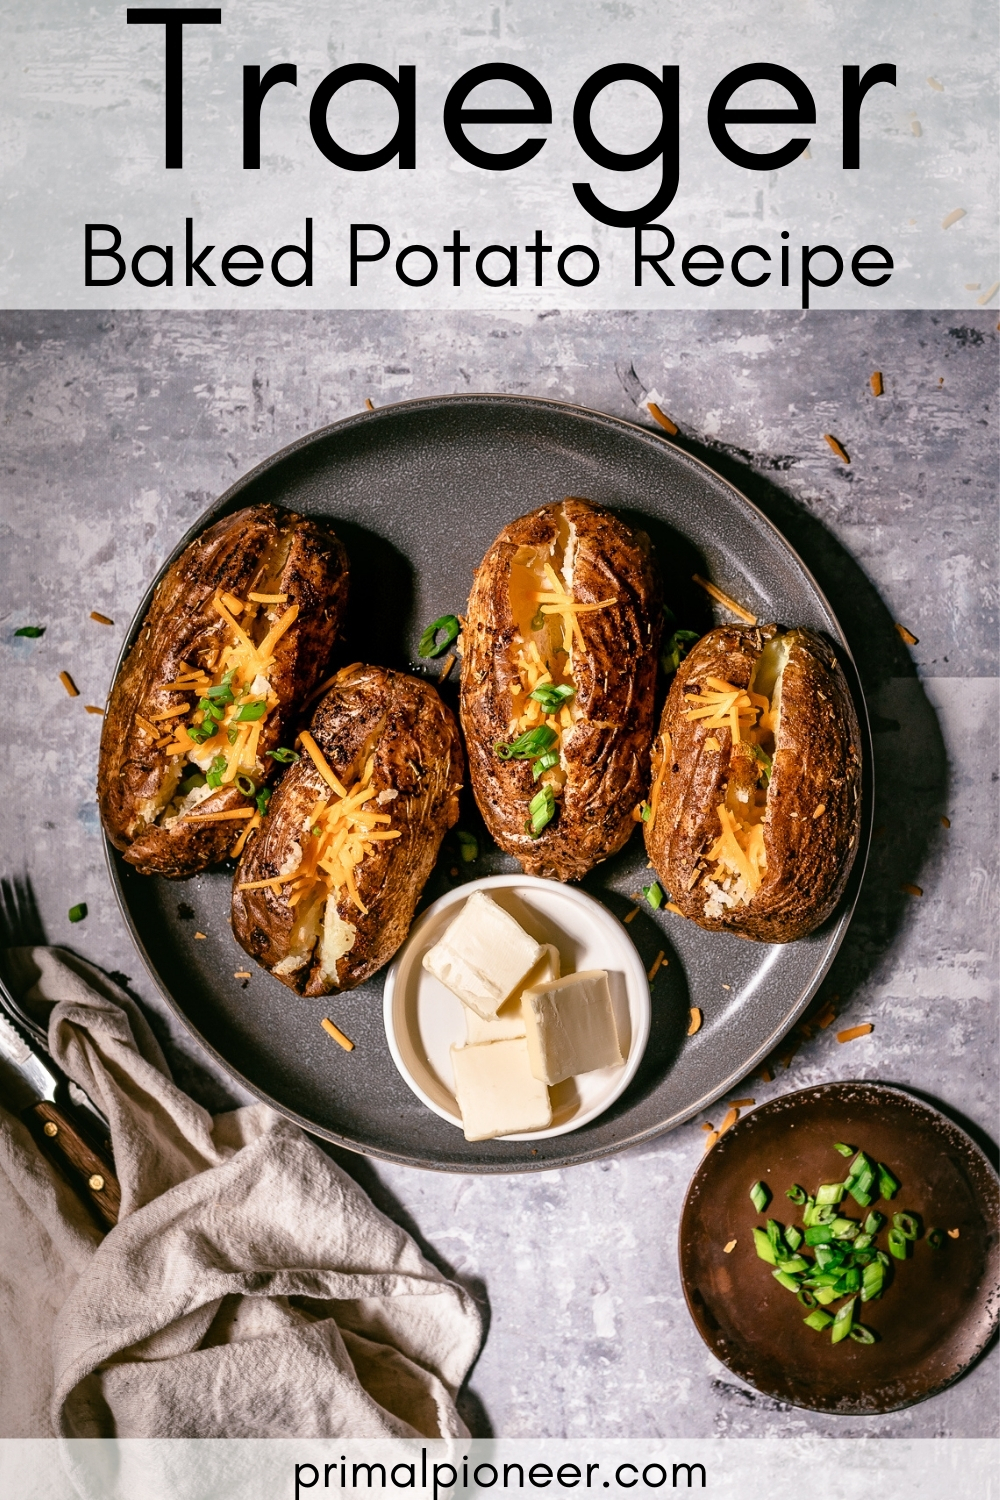 a plate of baked potatoes cooked on the Traeger